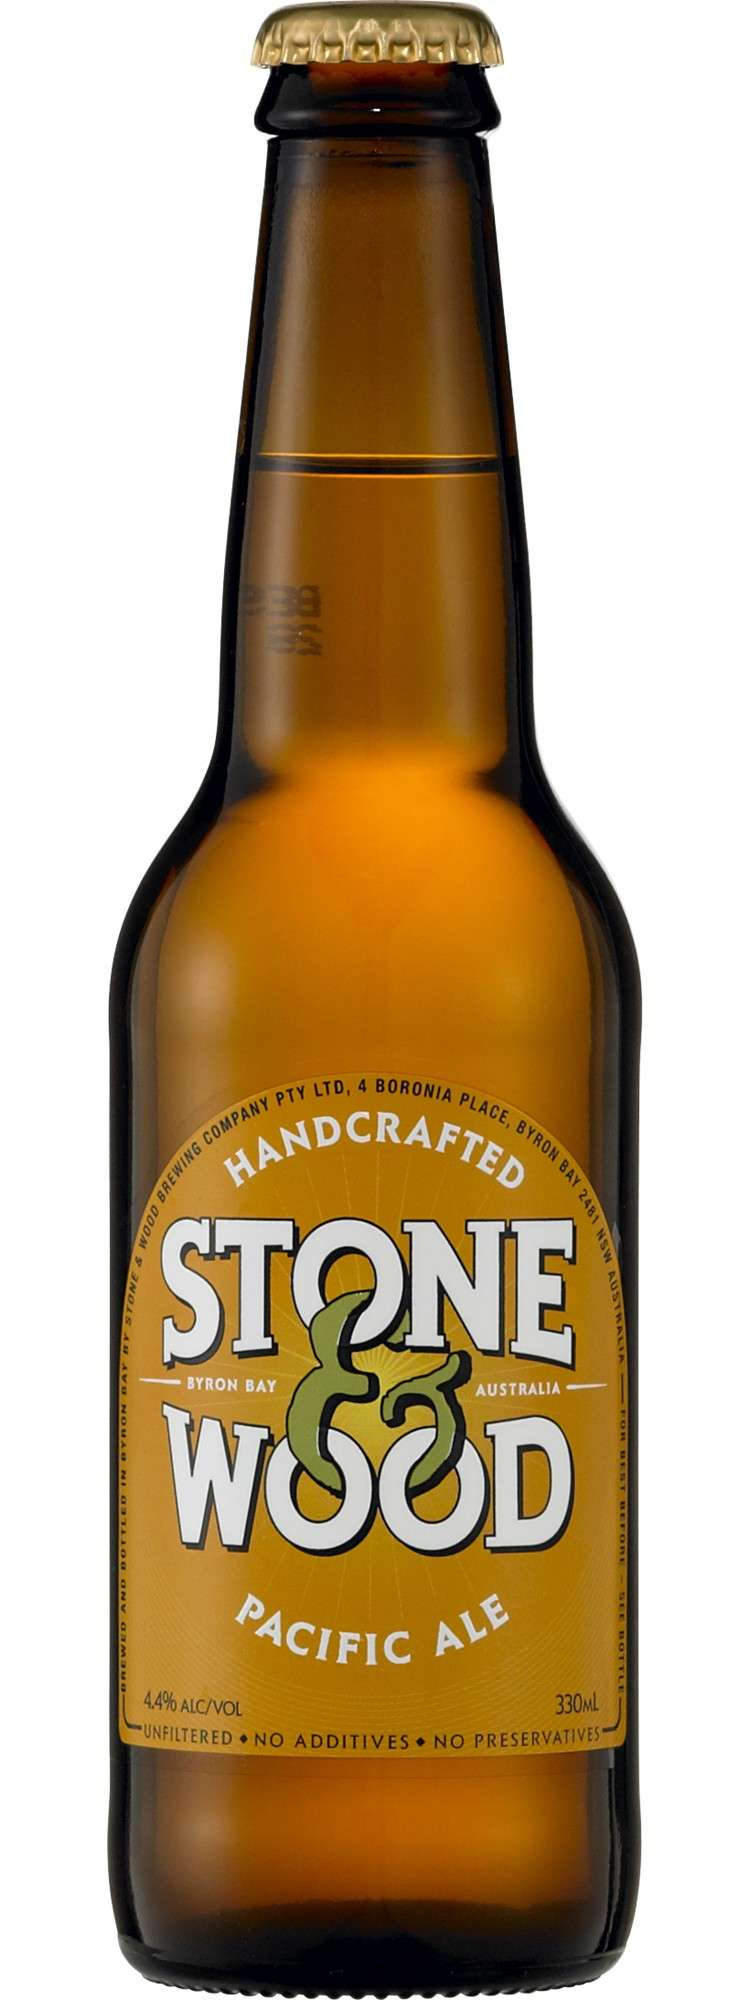 stone wood pacific ale beer store. Black Bedroom Furniture Sets. Home Design Ideas